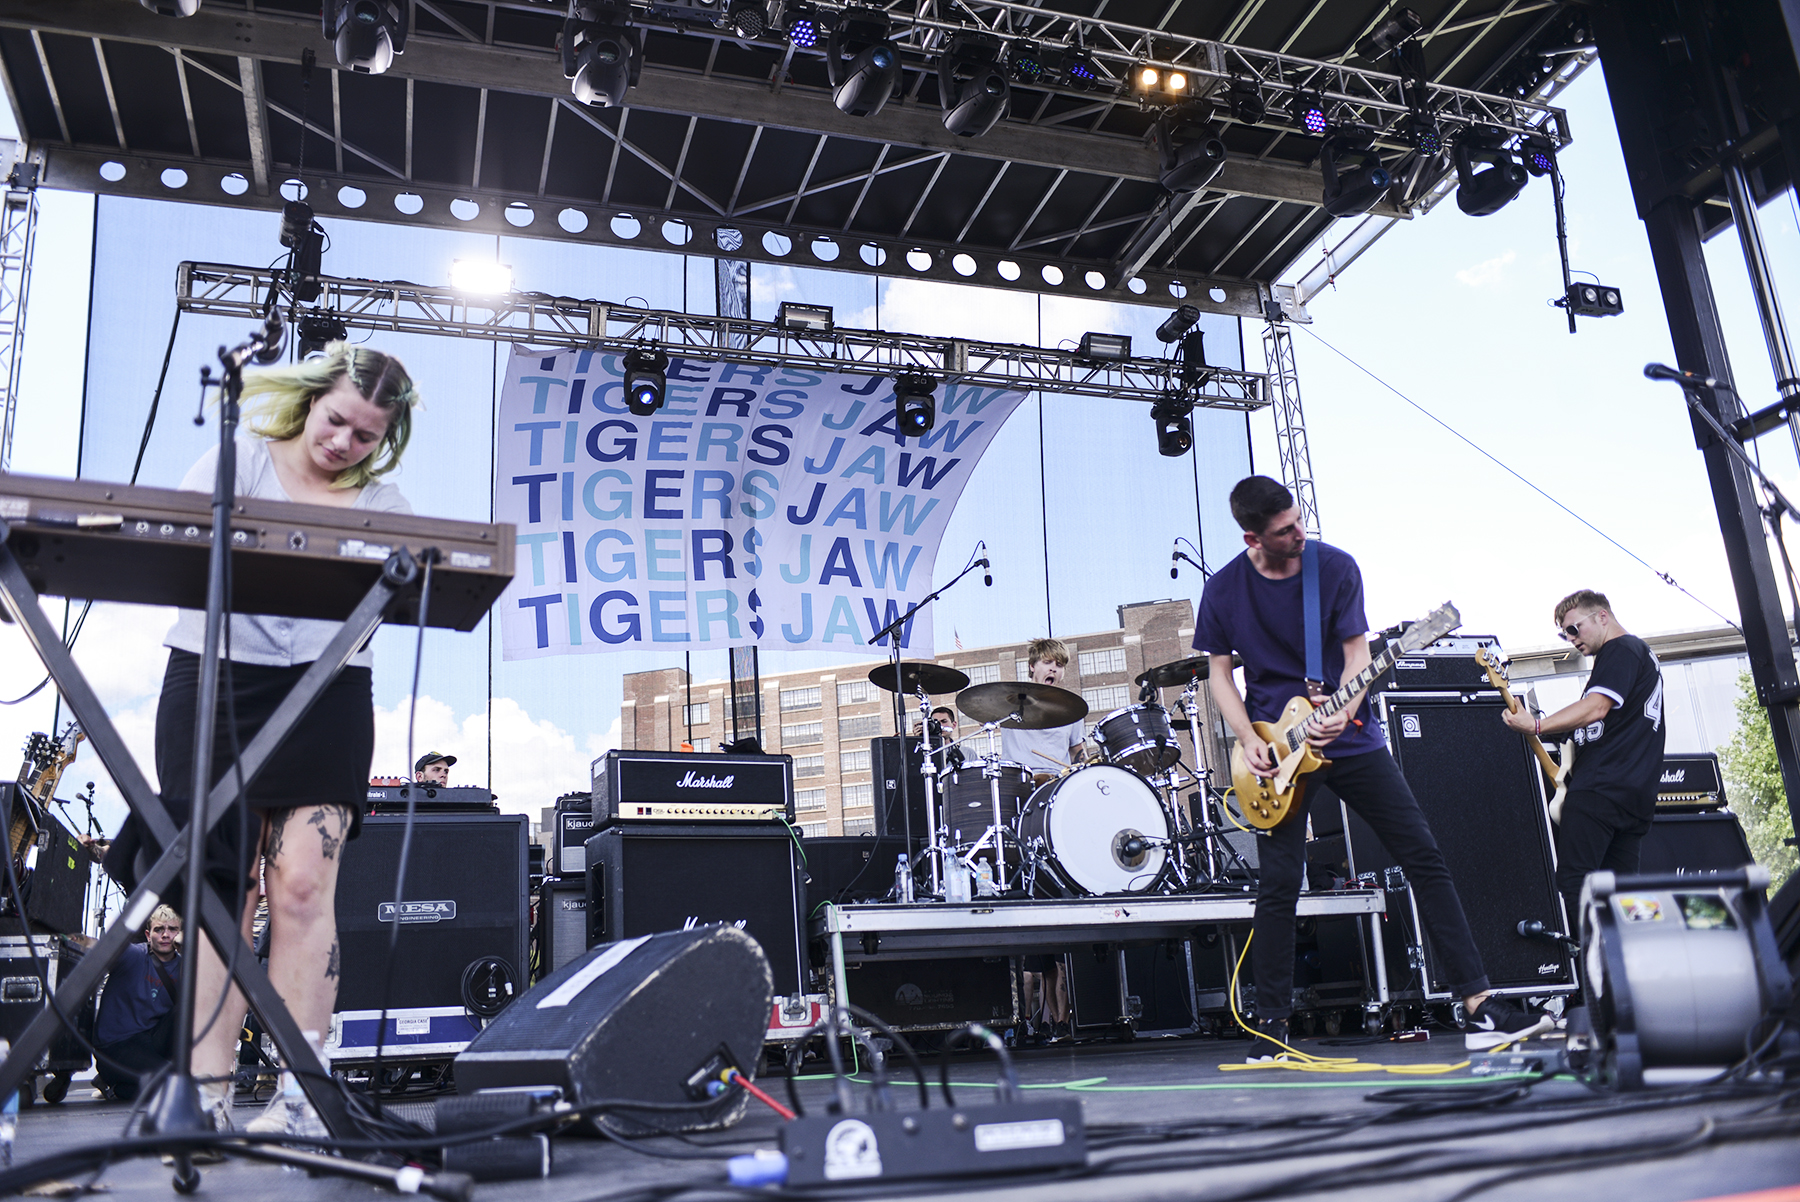 Tigers Jaw_WB1.jpg